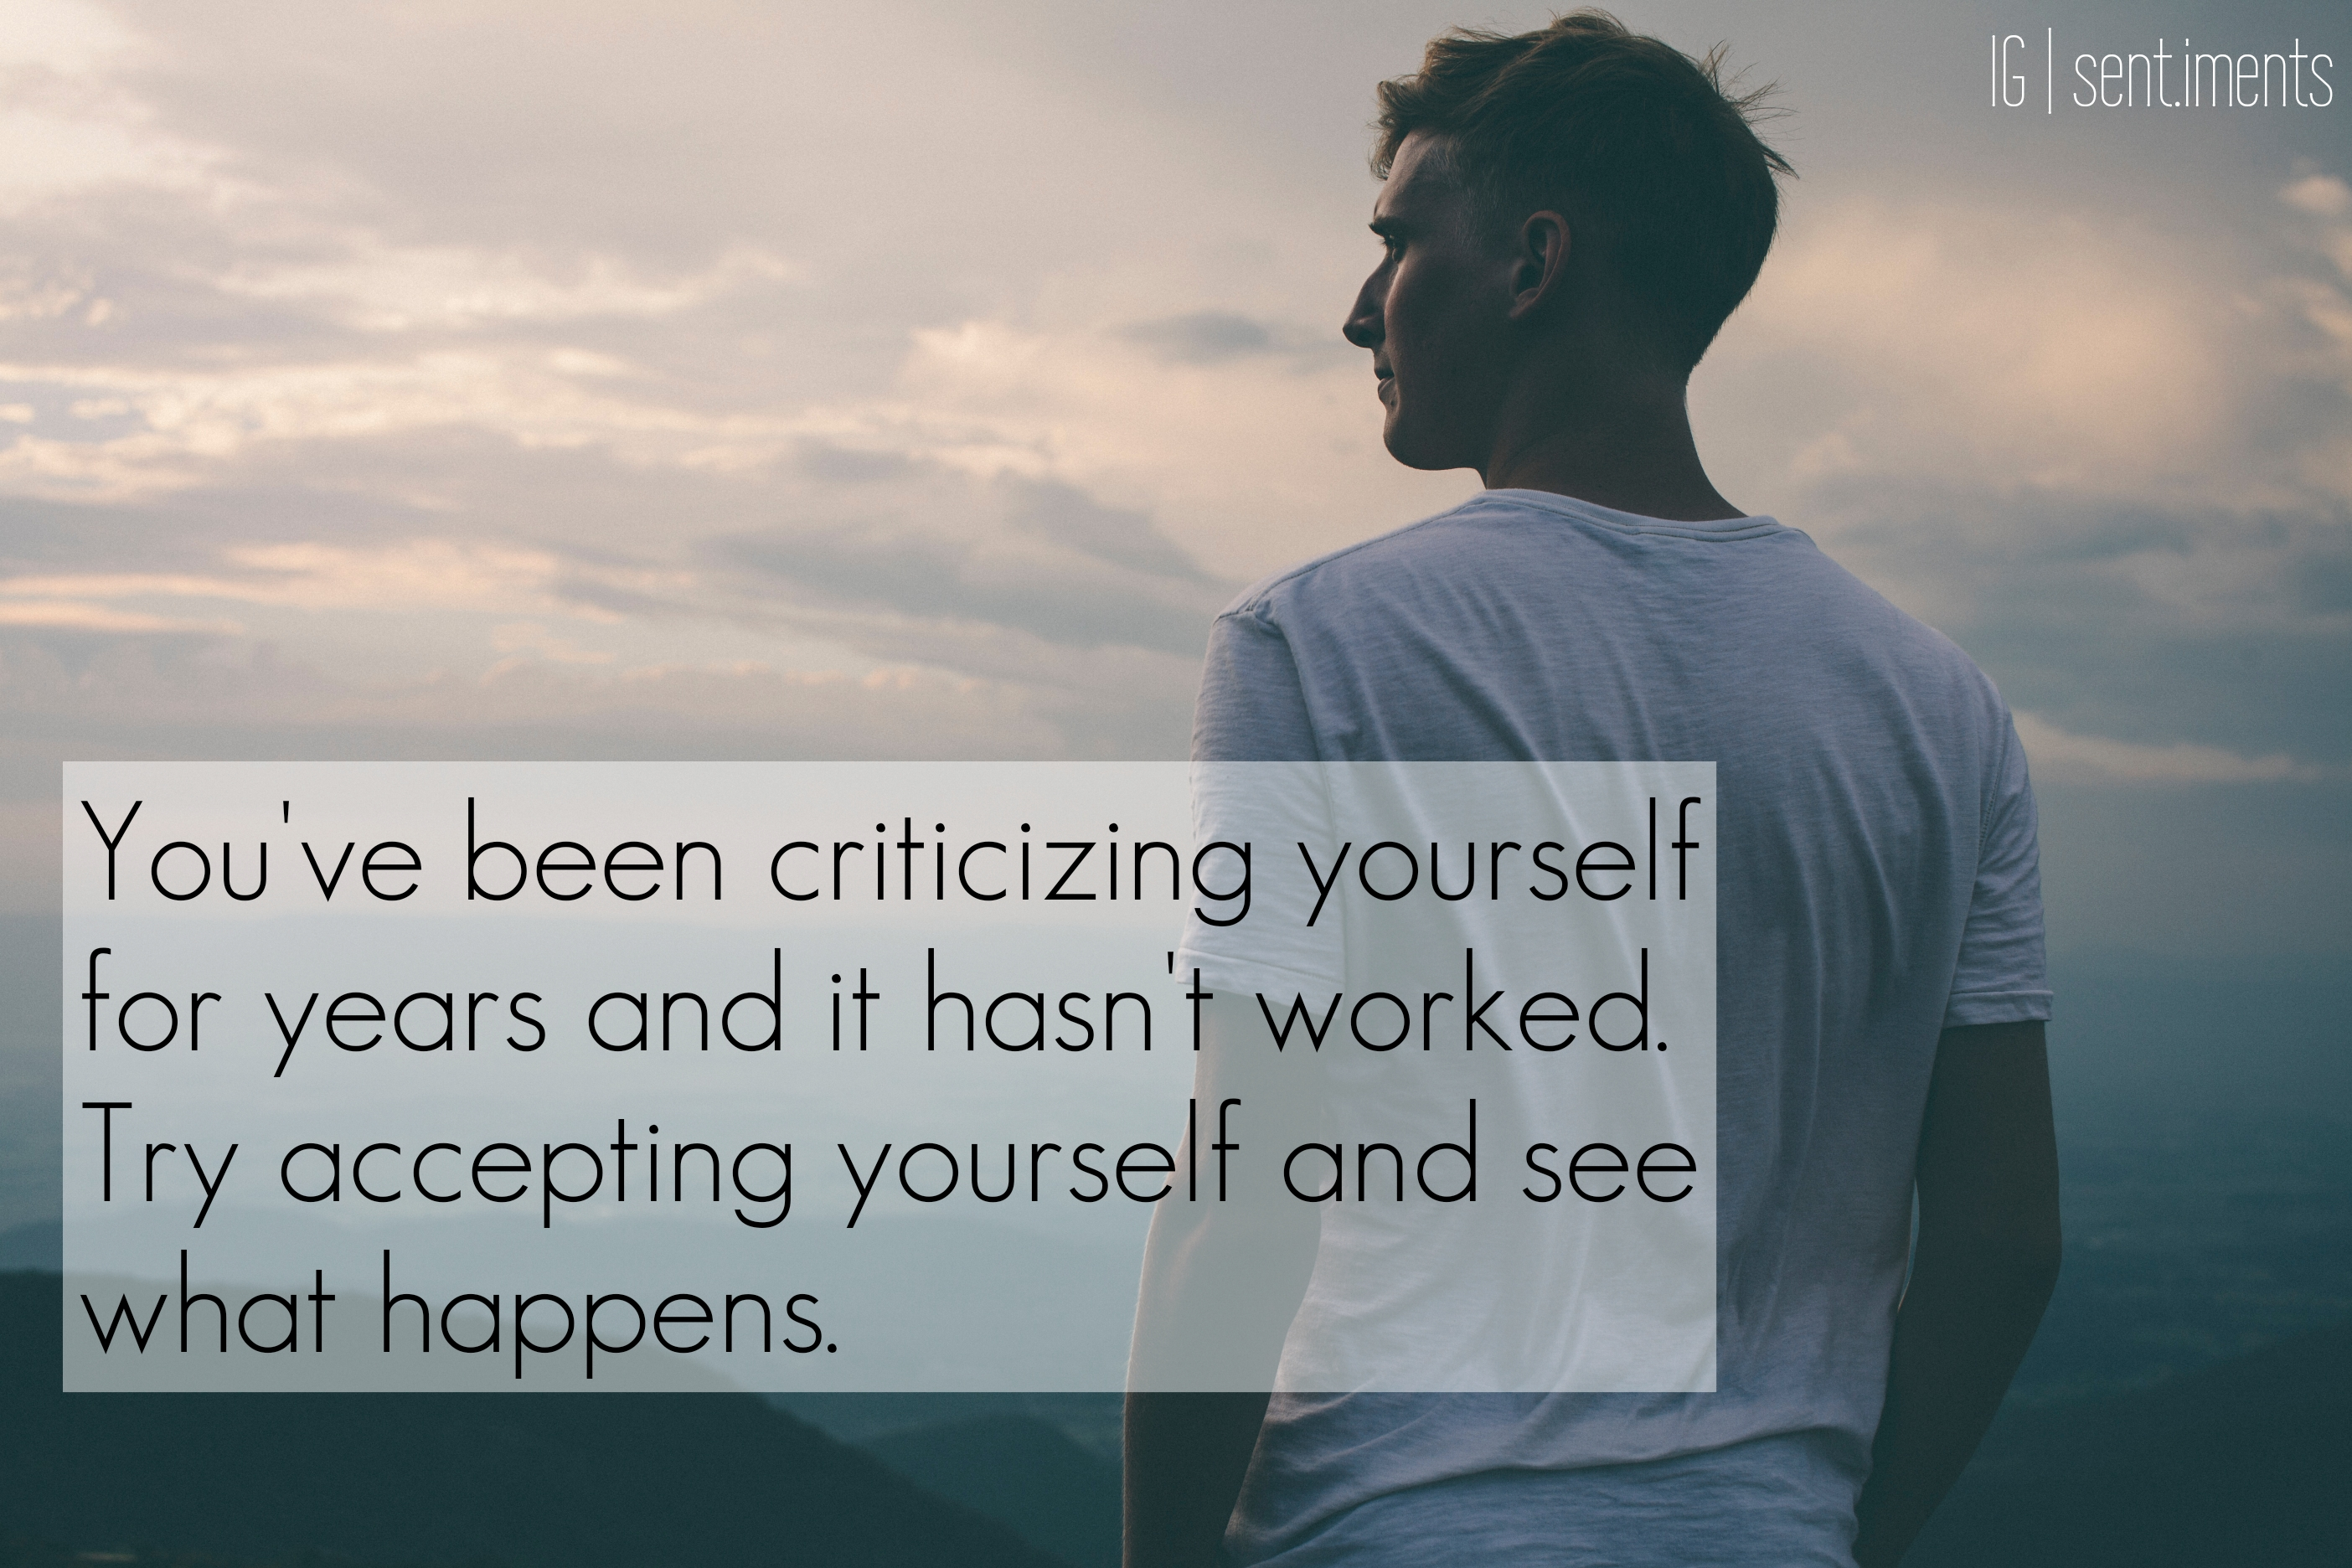 You've been criticizing yourself for years and it hasn't worked. Try accepting yourself and see what happens by Unknown (2808X1872)